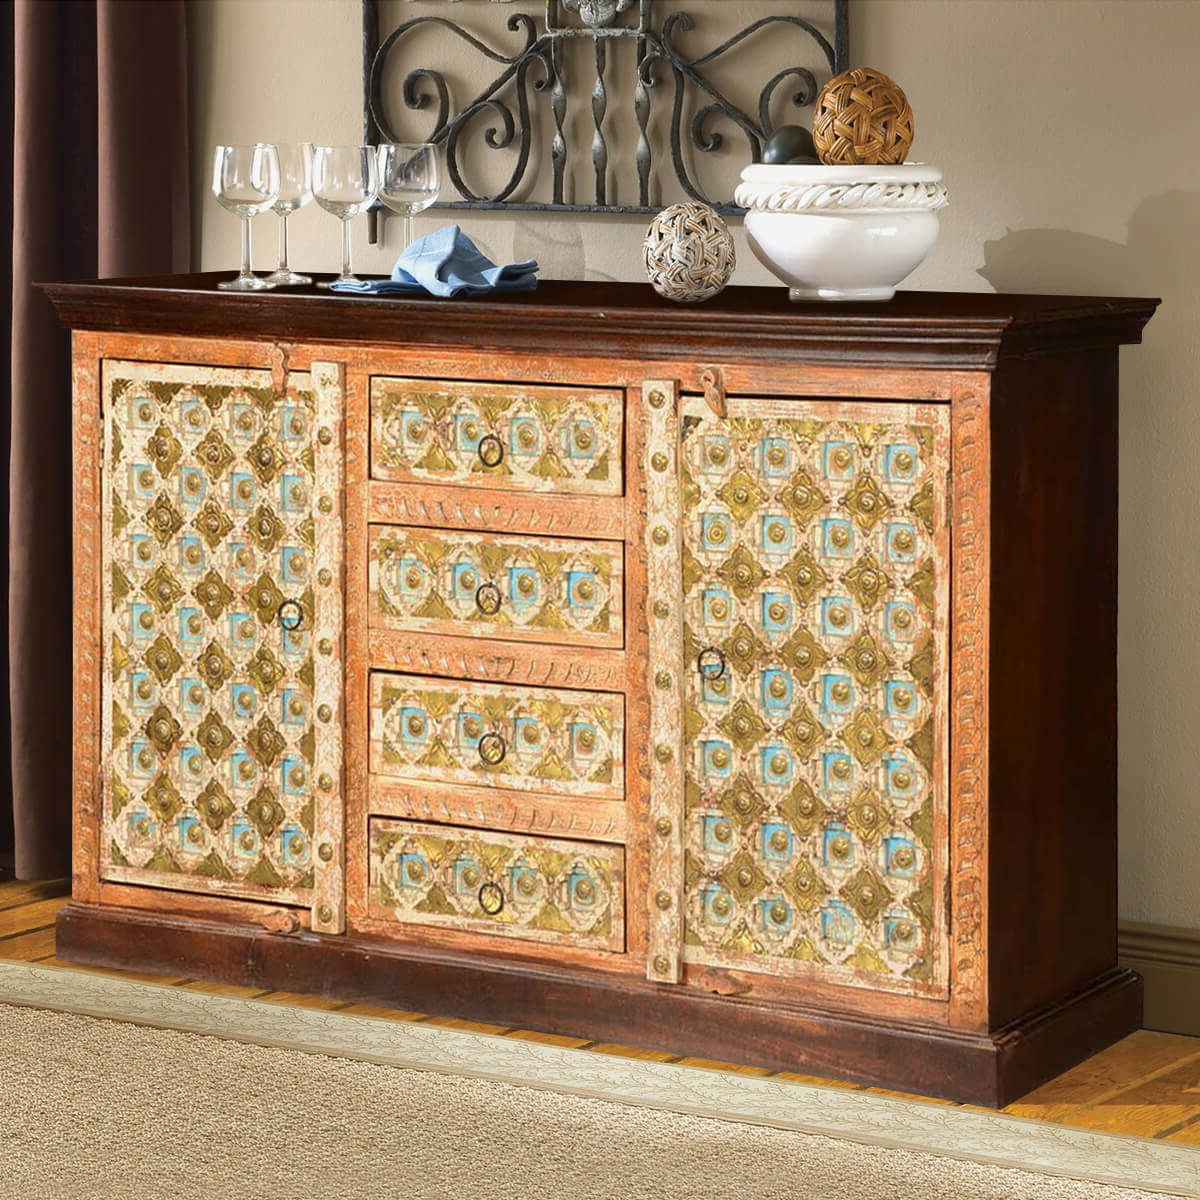 Latest Open Shelf Brass 4 Drawer Sideboards For Turkish Handcrafted Brass Inlay Mango Wood 4 Drawer Sideboard Cabinet (View 4 of 20)